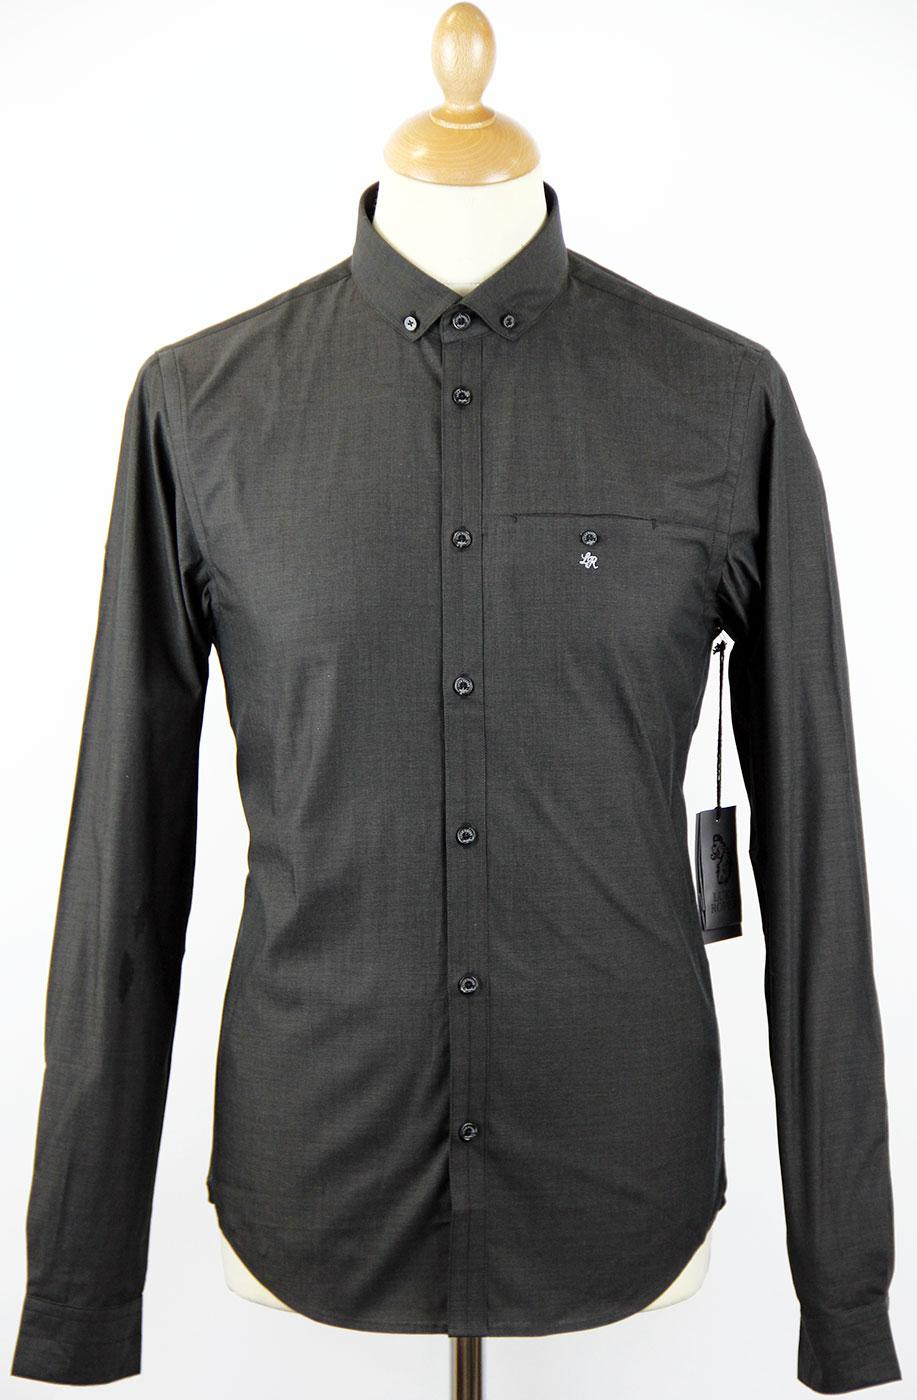 Amersham LUKE ROPER Mod Button Down Dress Shirt B